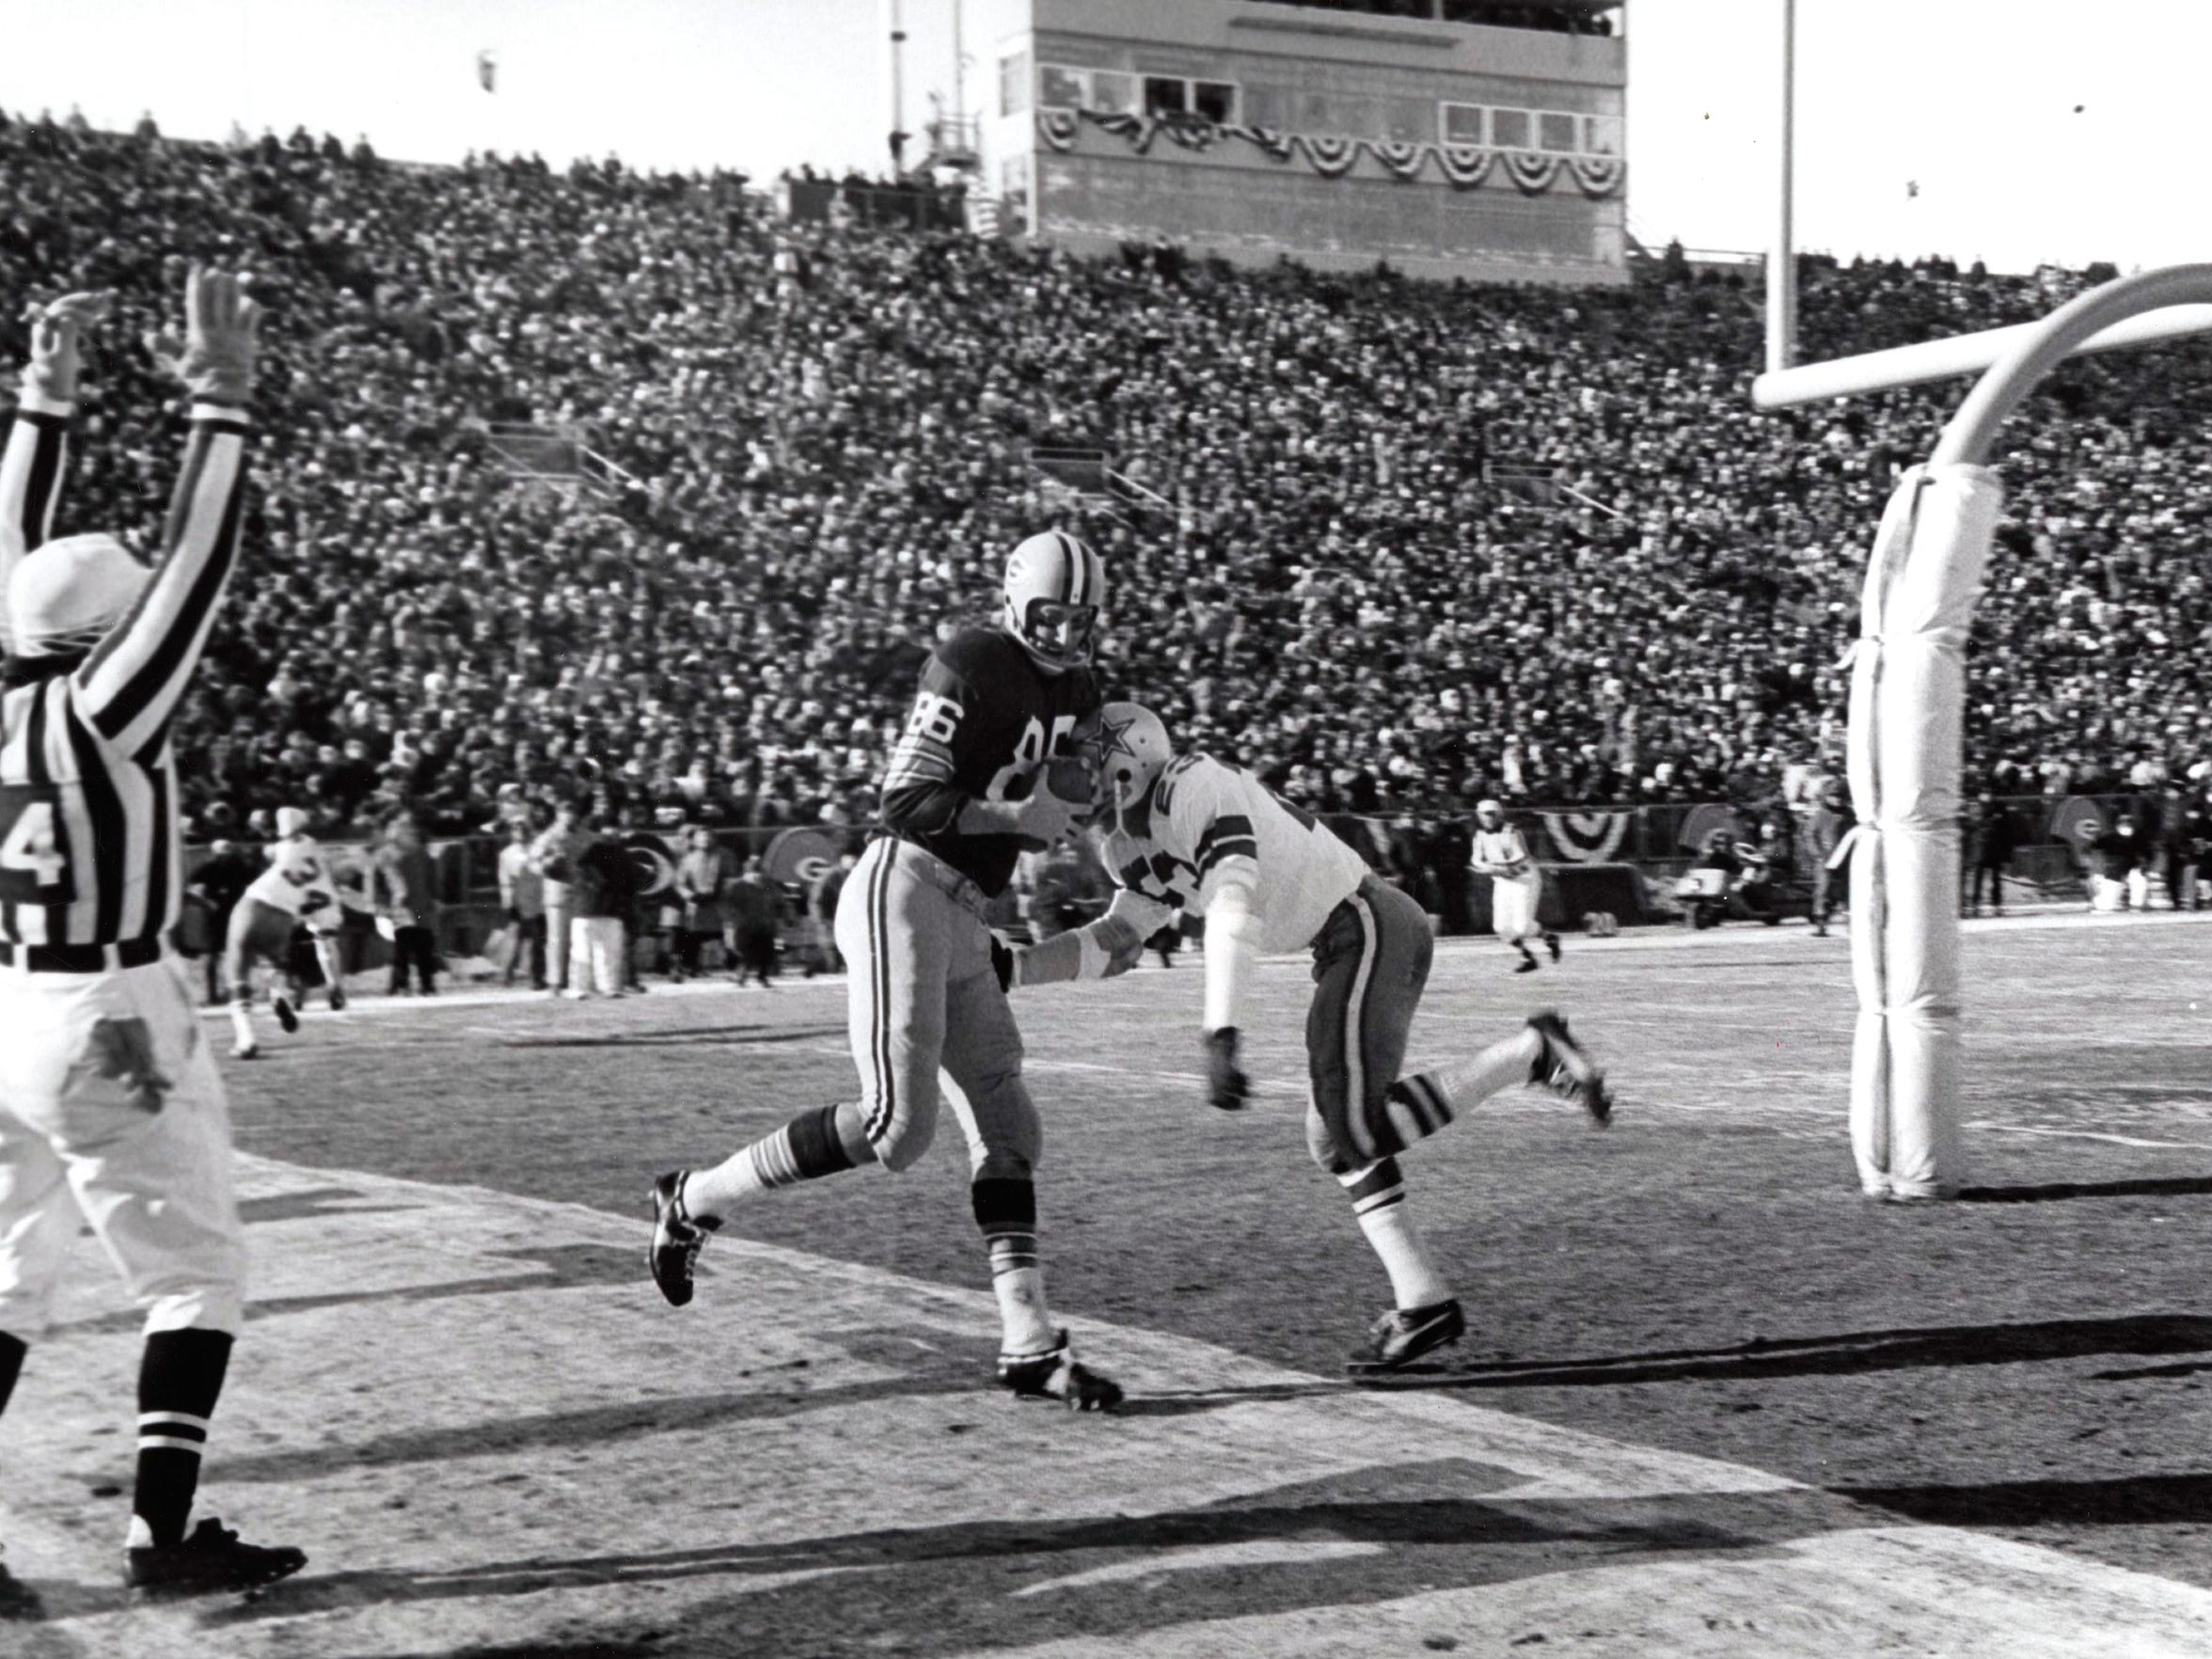 Green Bay Packers receiver Boyd Dowler catches the first touchdown pass in the 1967 NFL Championship Game at Lambeau Field. The 8-yard play was the result of an audible from Bart Starr.